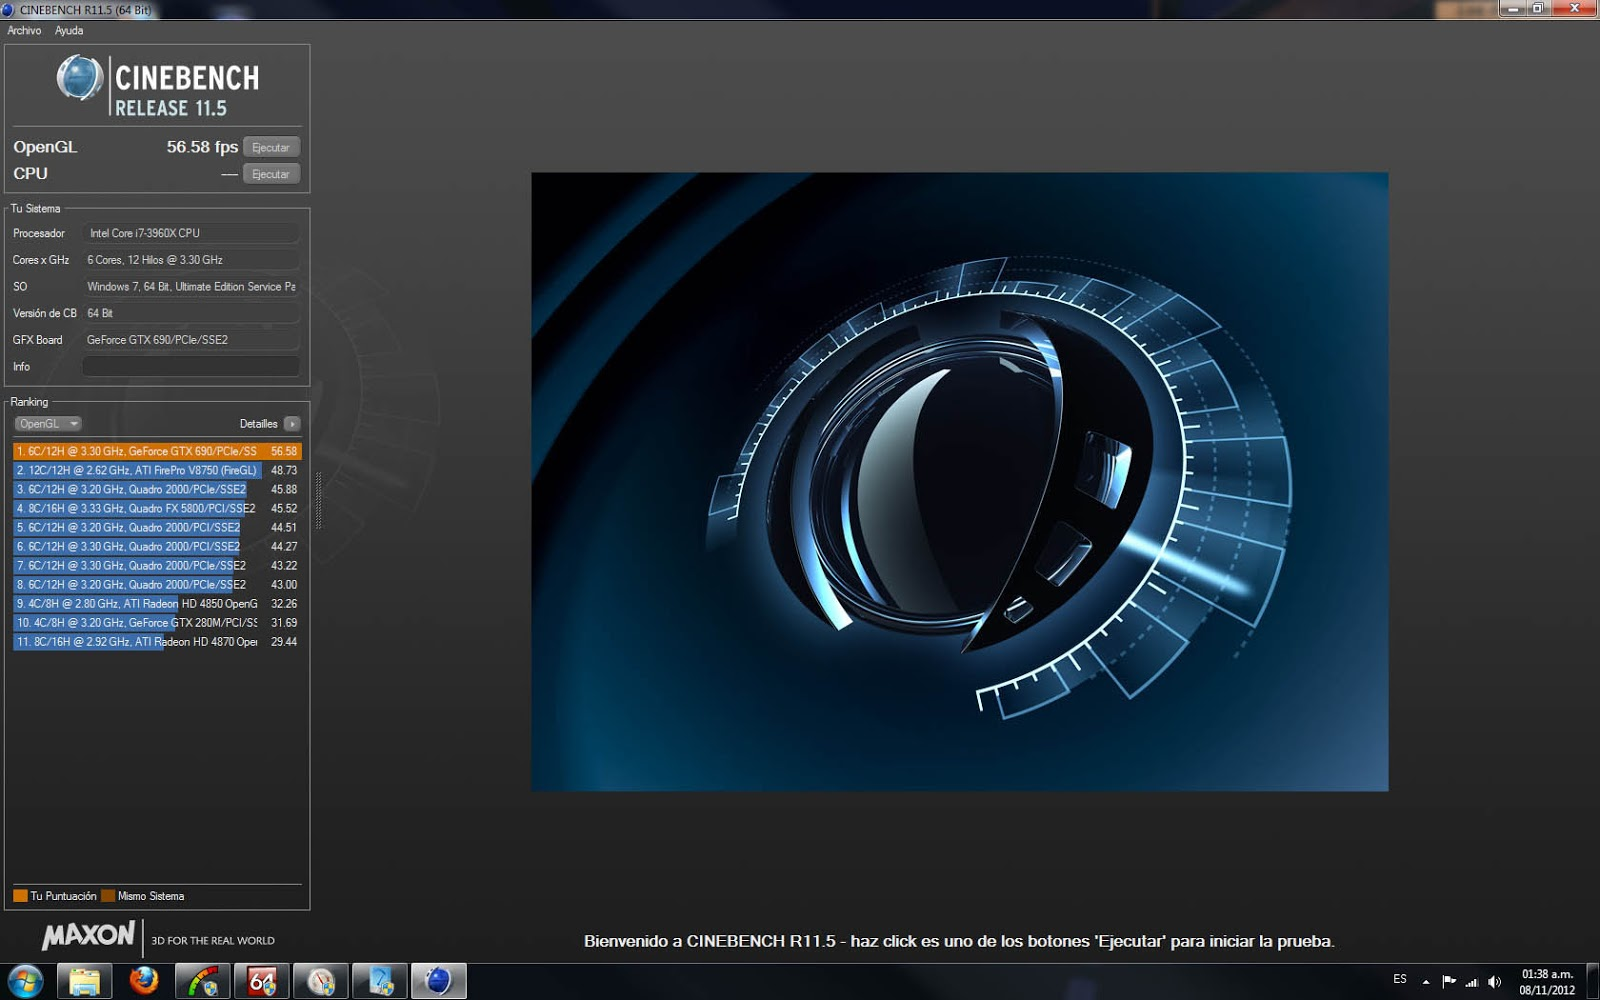 MAXON CINEBENCH 11.529